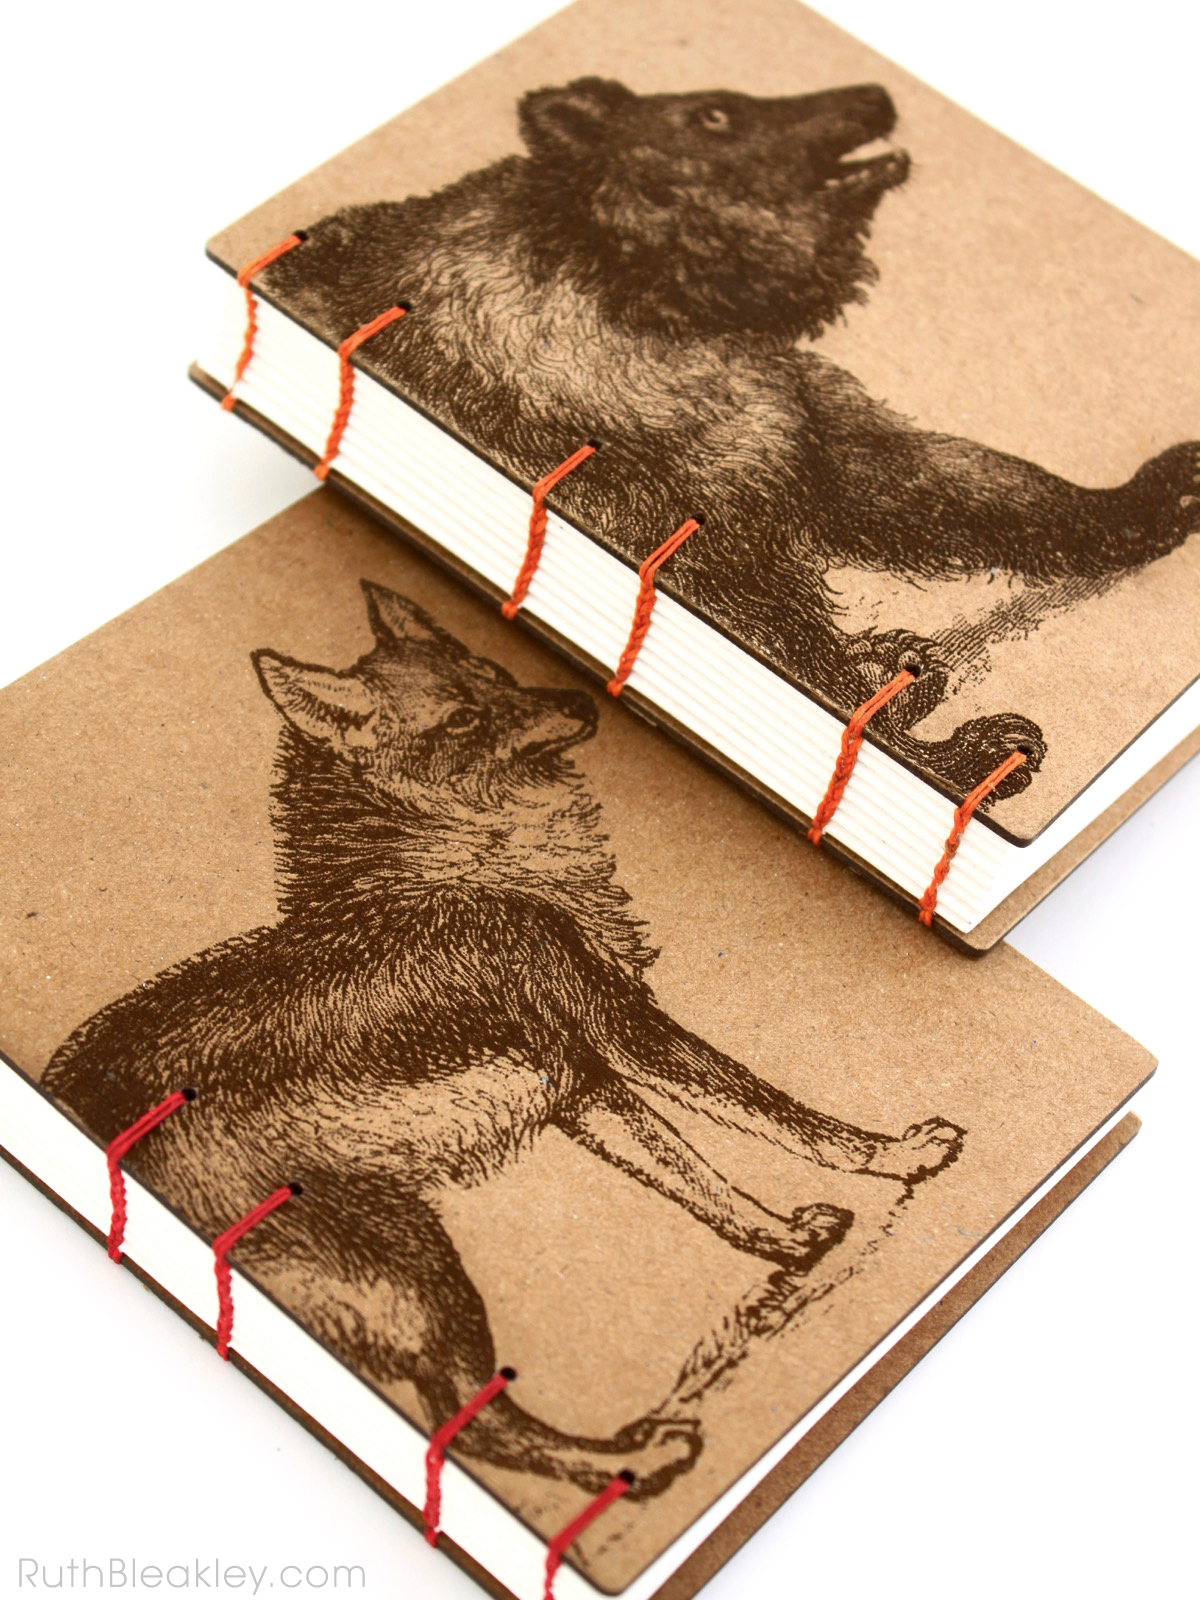 Coyote and Bear Journals handmade by American book artist Ruth Bleakley - 1